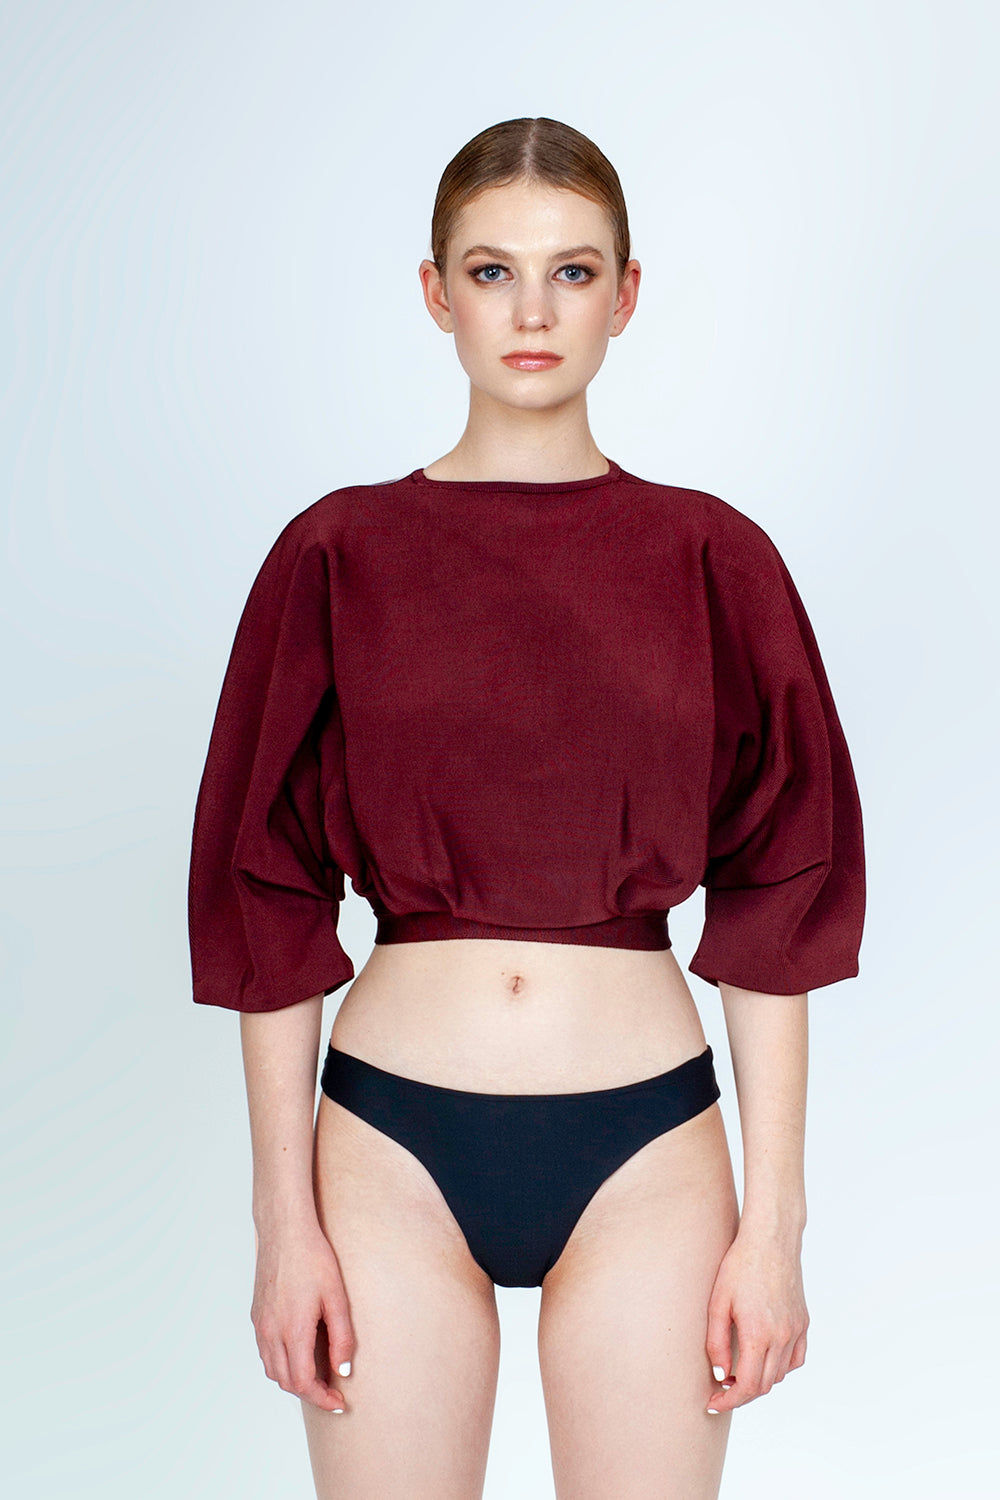 HAIGHT Inner Pleated Knit Top - Garnet Red Top | Garnet Red| Haight Inner Pleated Knit Bikini Top - Garnet Red Features:  Crew neckline  Sleeves to elbow length Pleated detail Front View